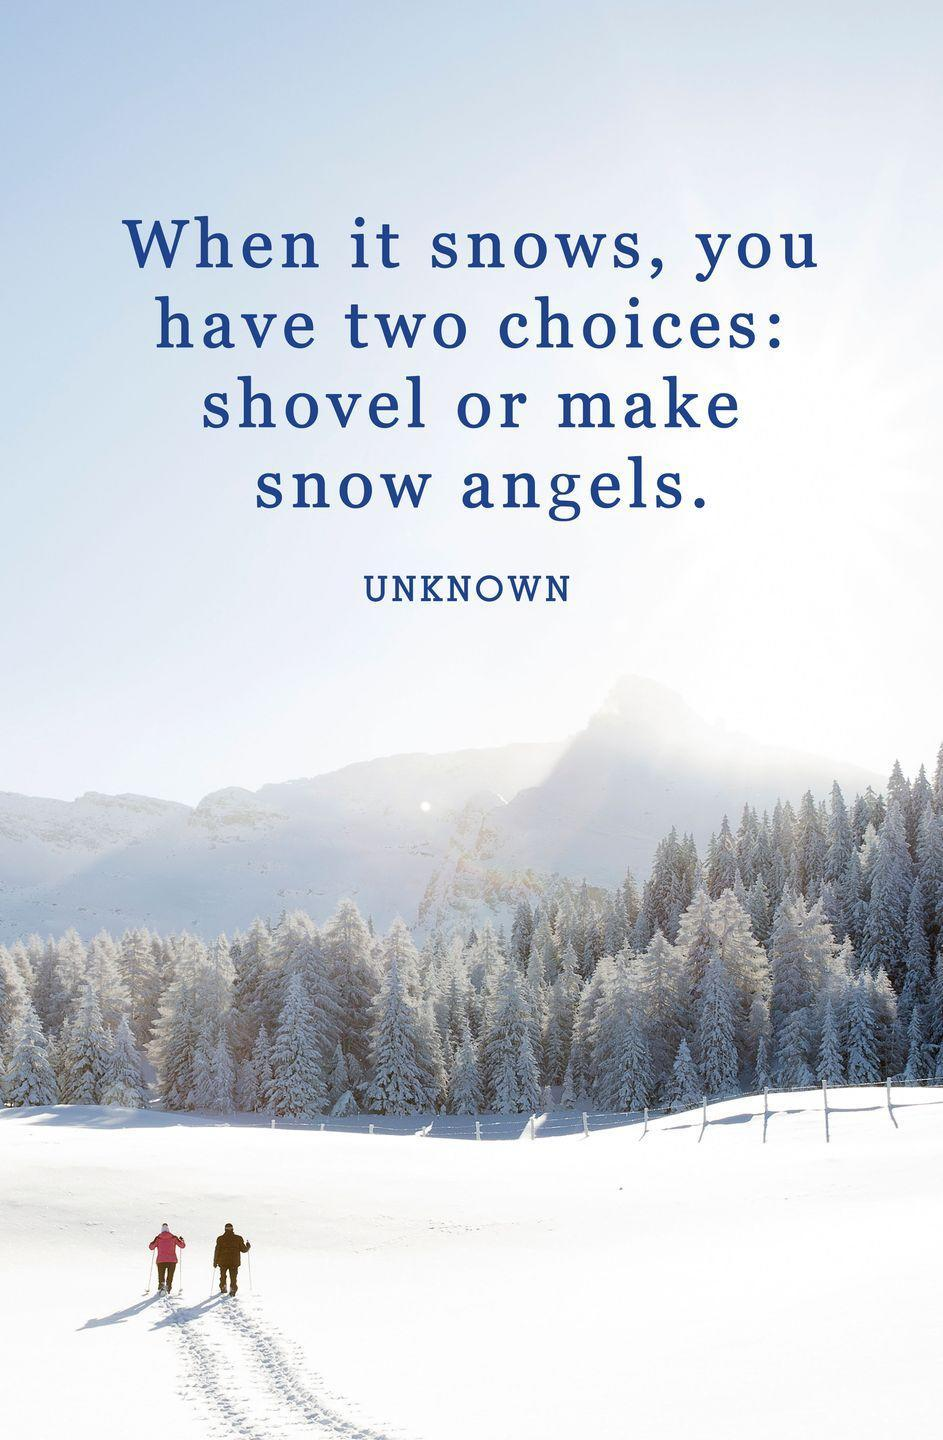 "<p>""When it snows, you have two choices: shovel or make snow angels.""</p>"